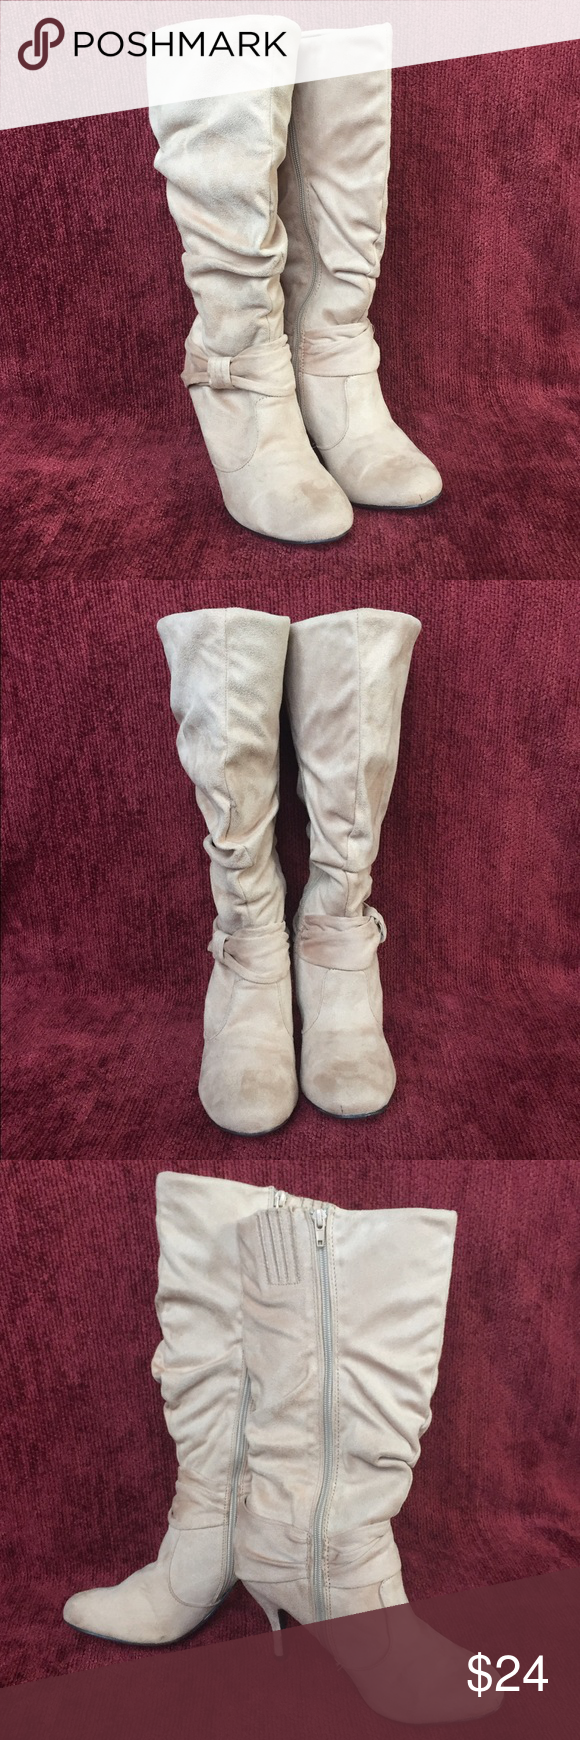 CR Suede Boots Charlotte Russe Faux Suede Boots Charlotte Russe Shoes Heeled Boots